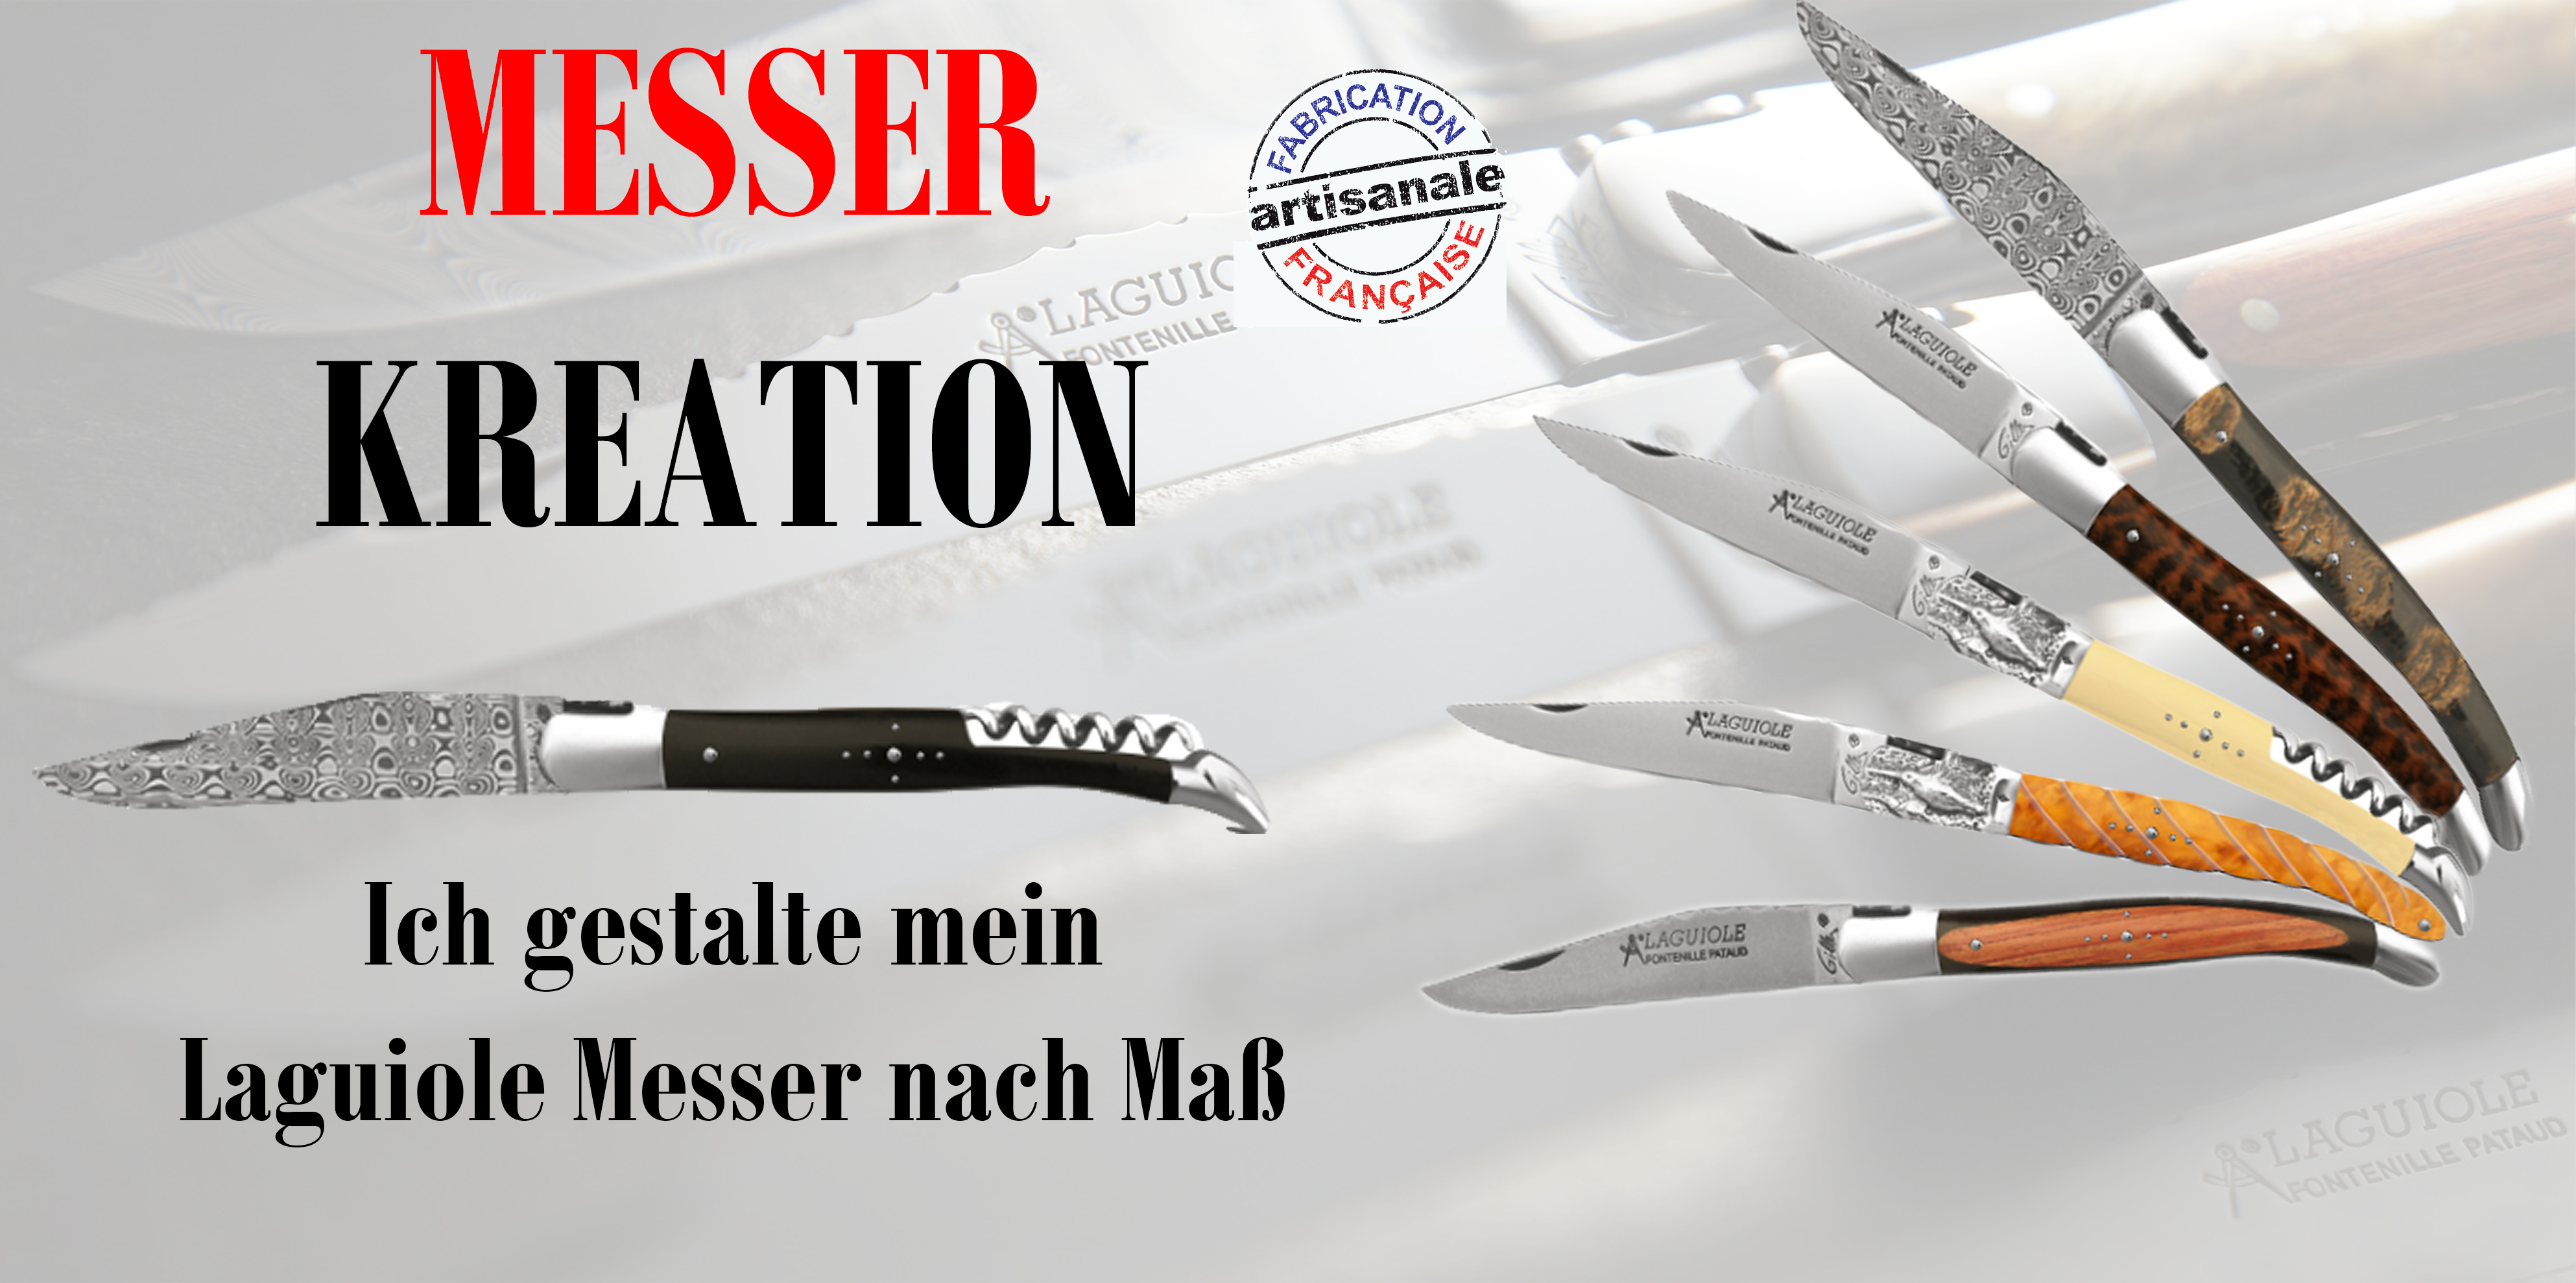 Messer Kreation